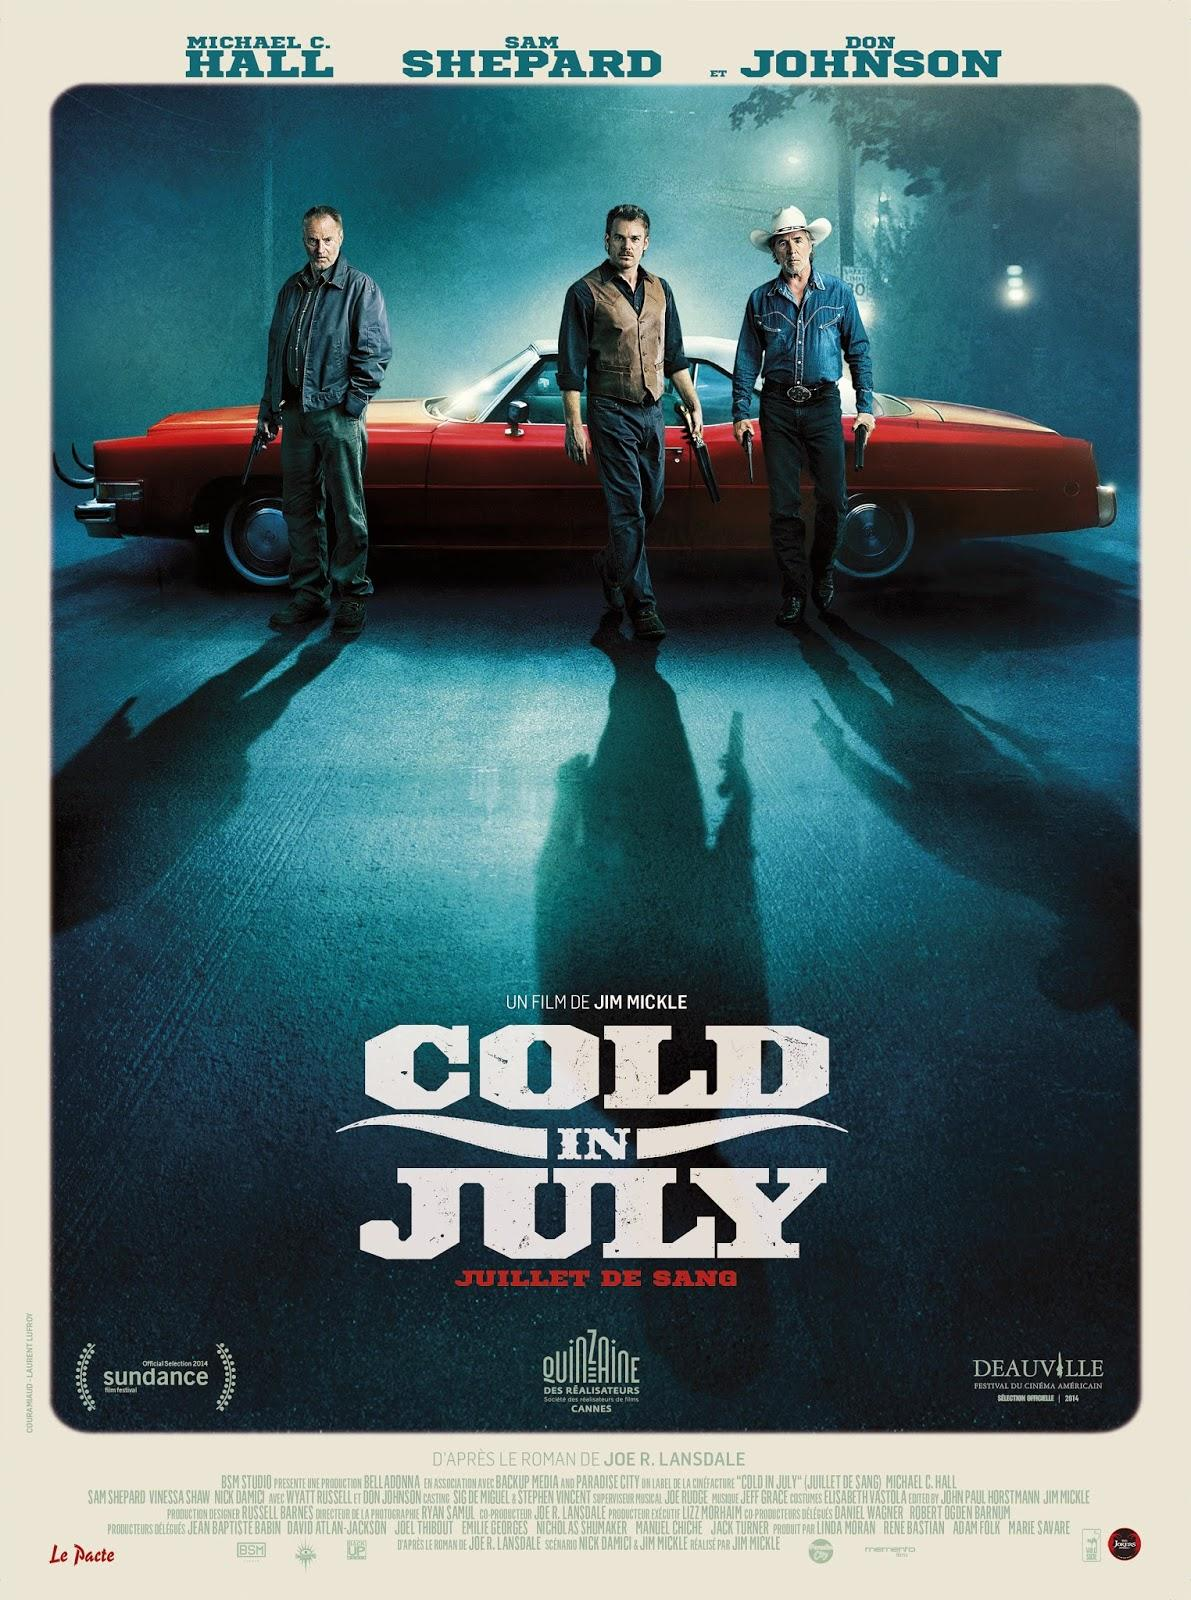 CINEMA: [INVITATIONS] Cold in July (2014), back to the eighties